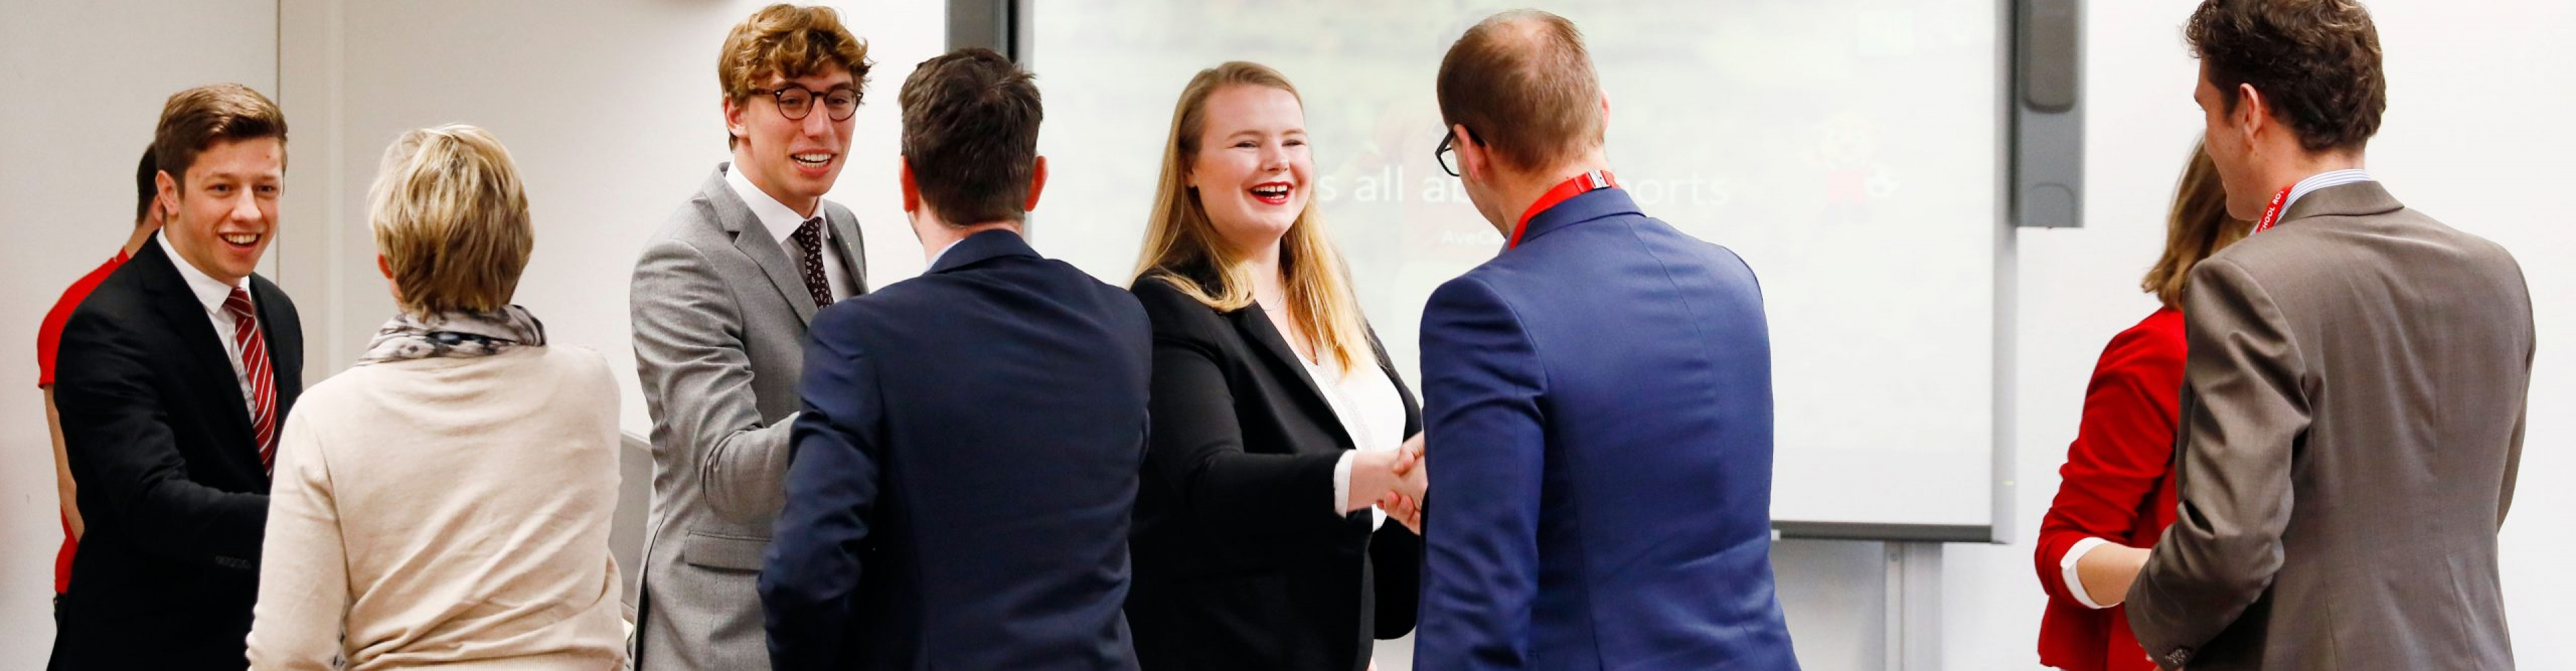 Students shaking hands of jury right before a presentation